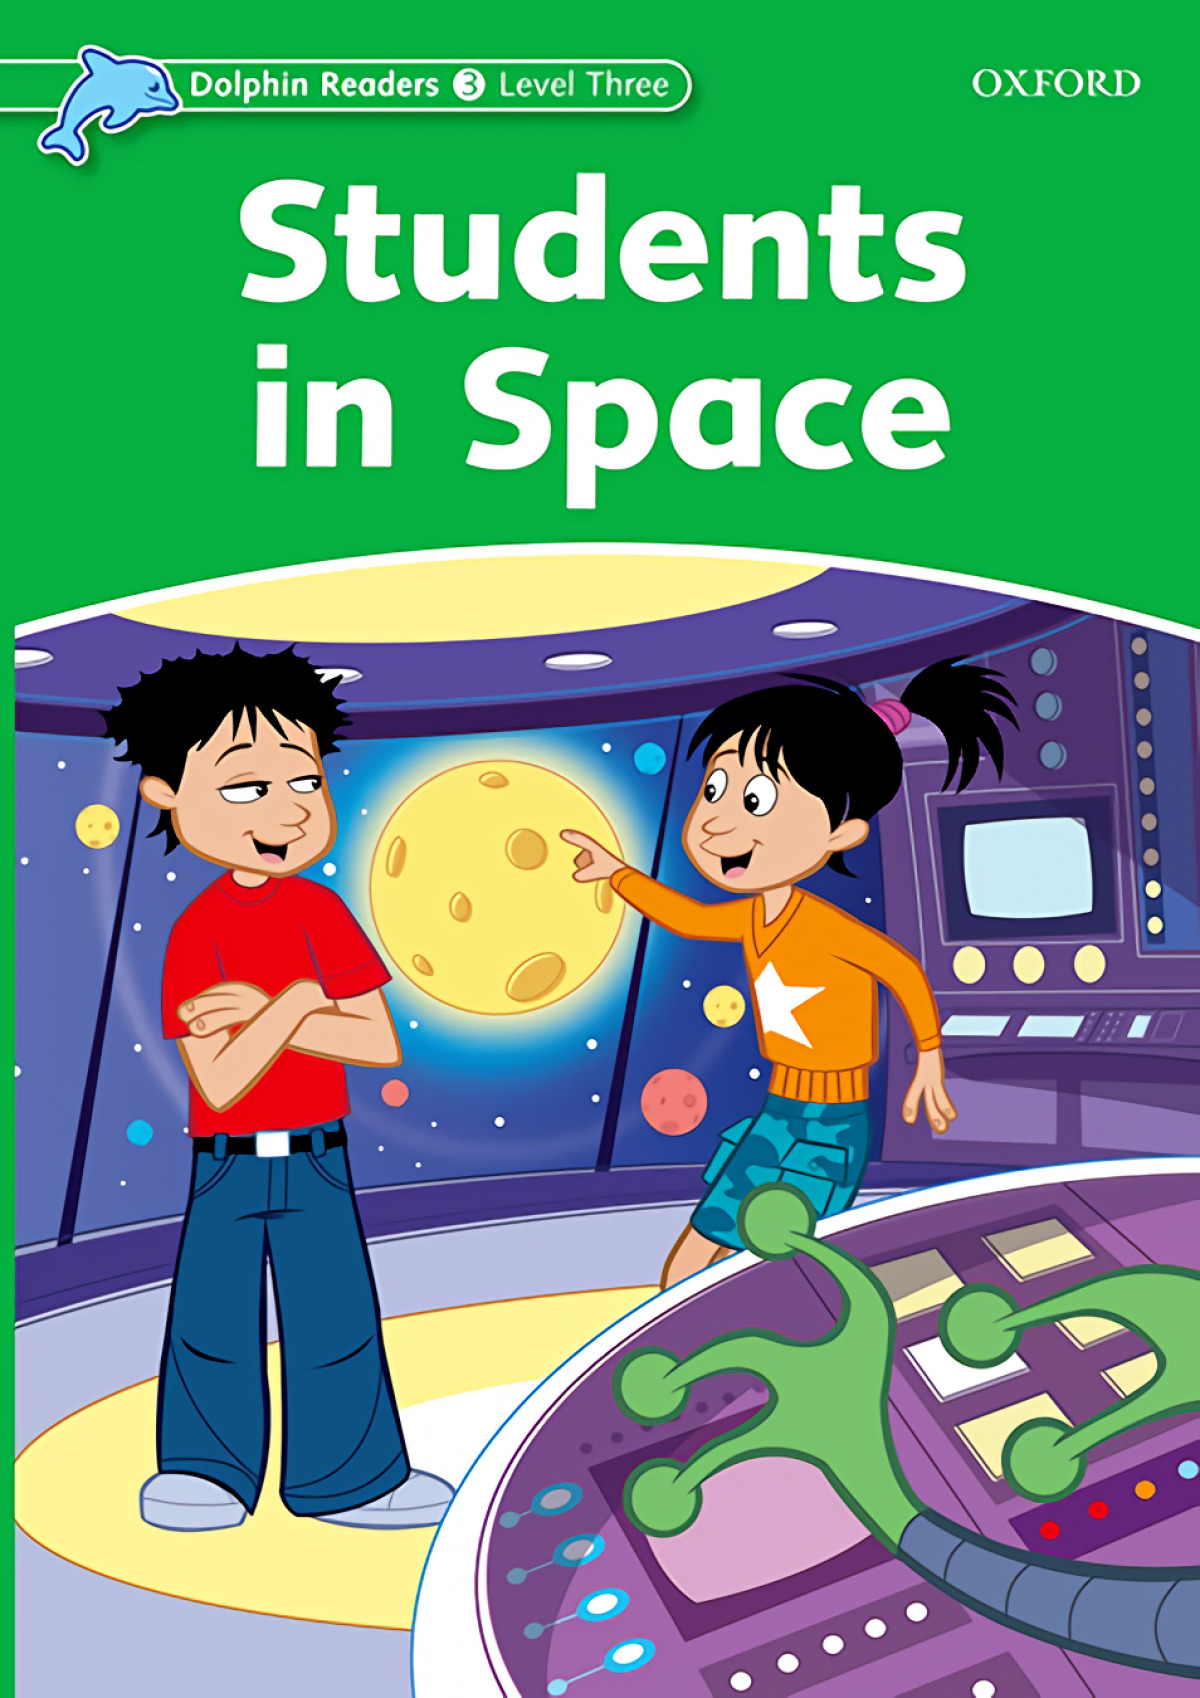 STUDENTS IN SPACE DOLPHIN READERS LEVEL 3